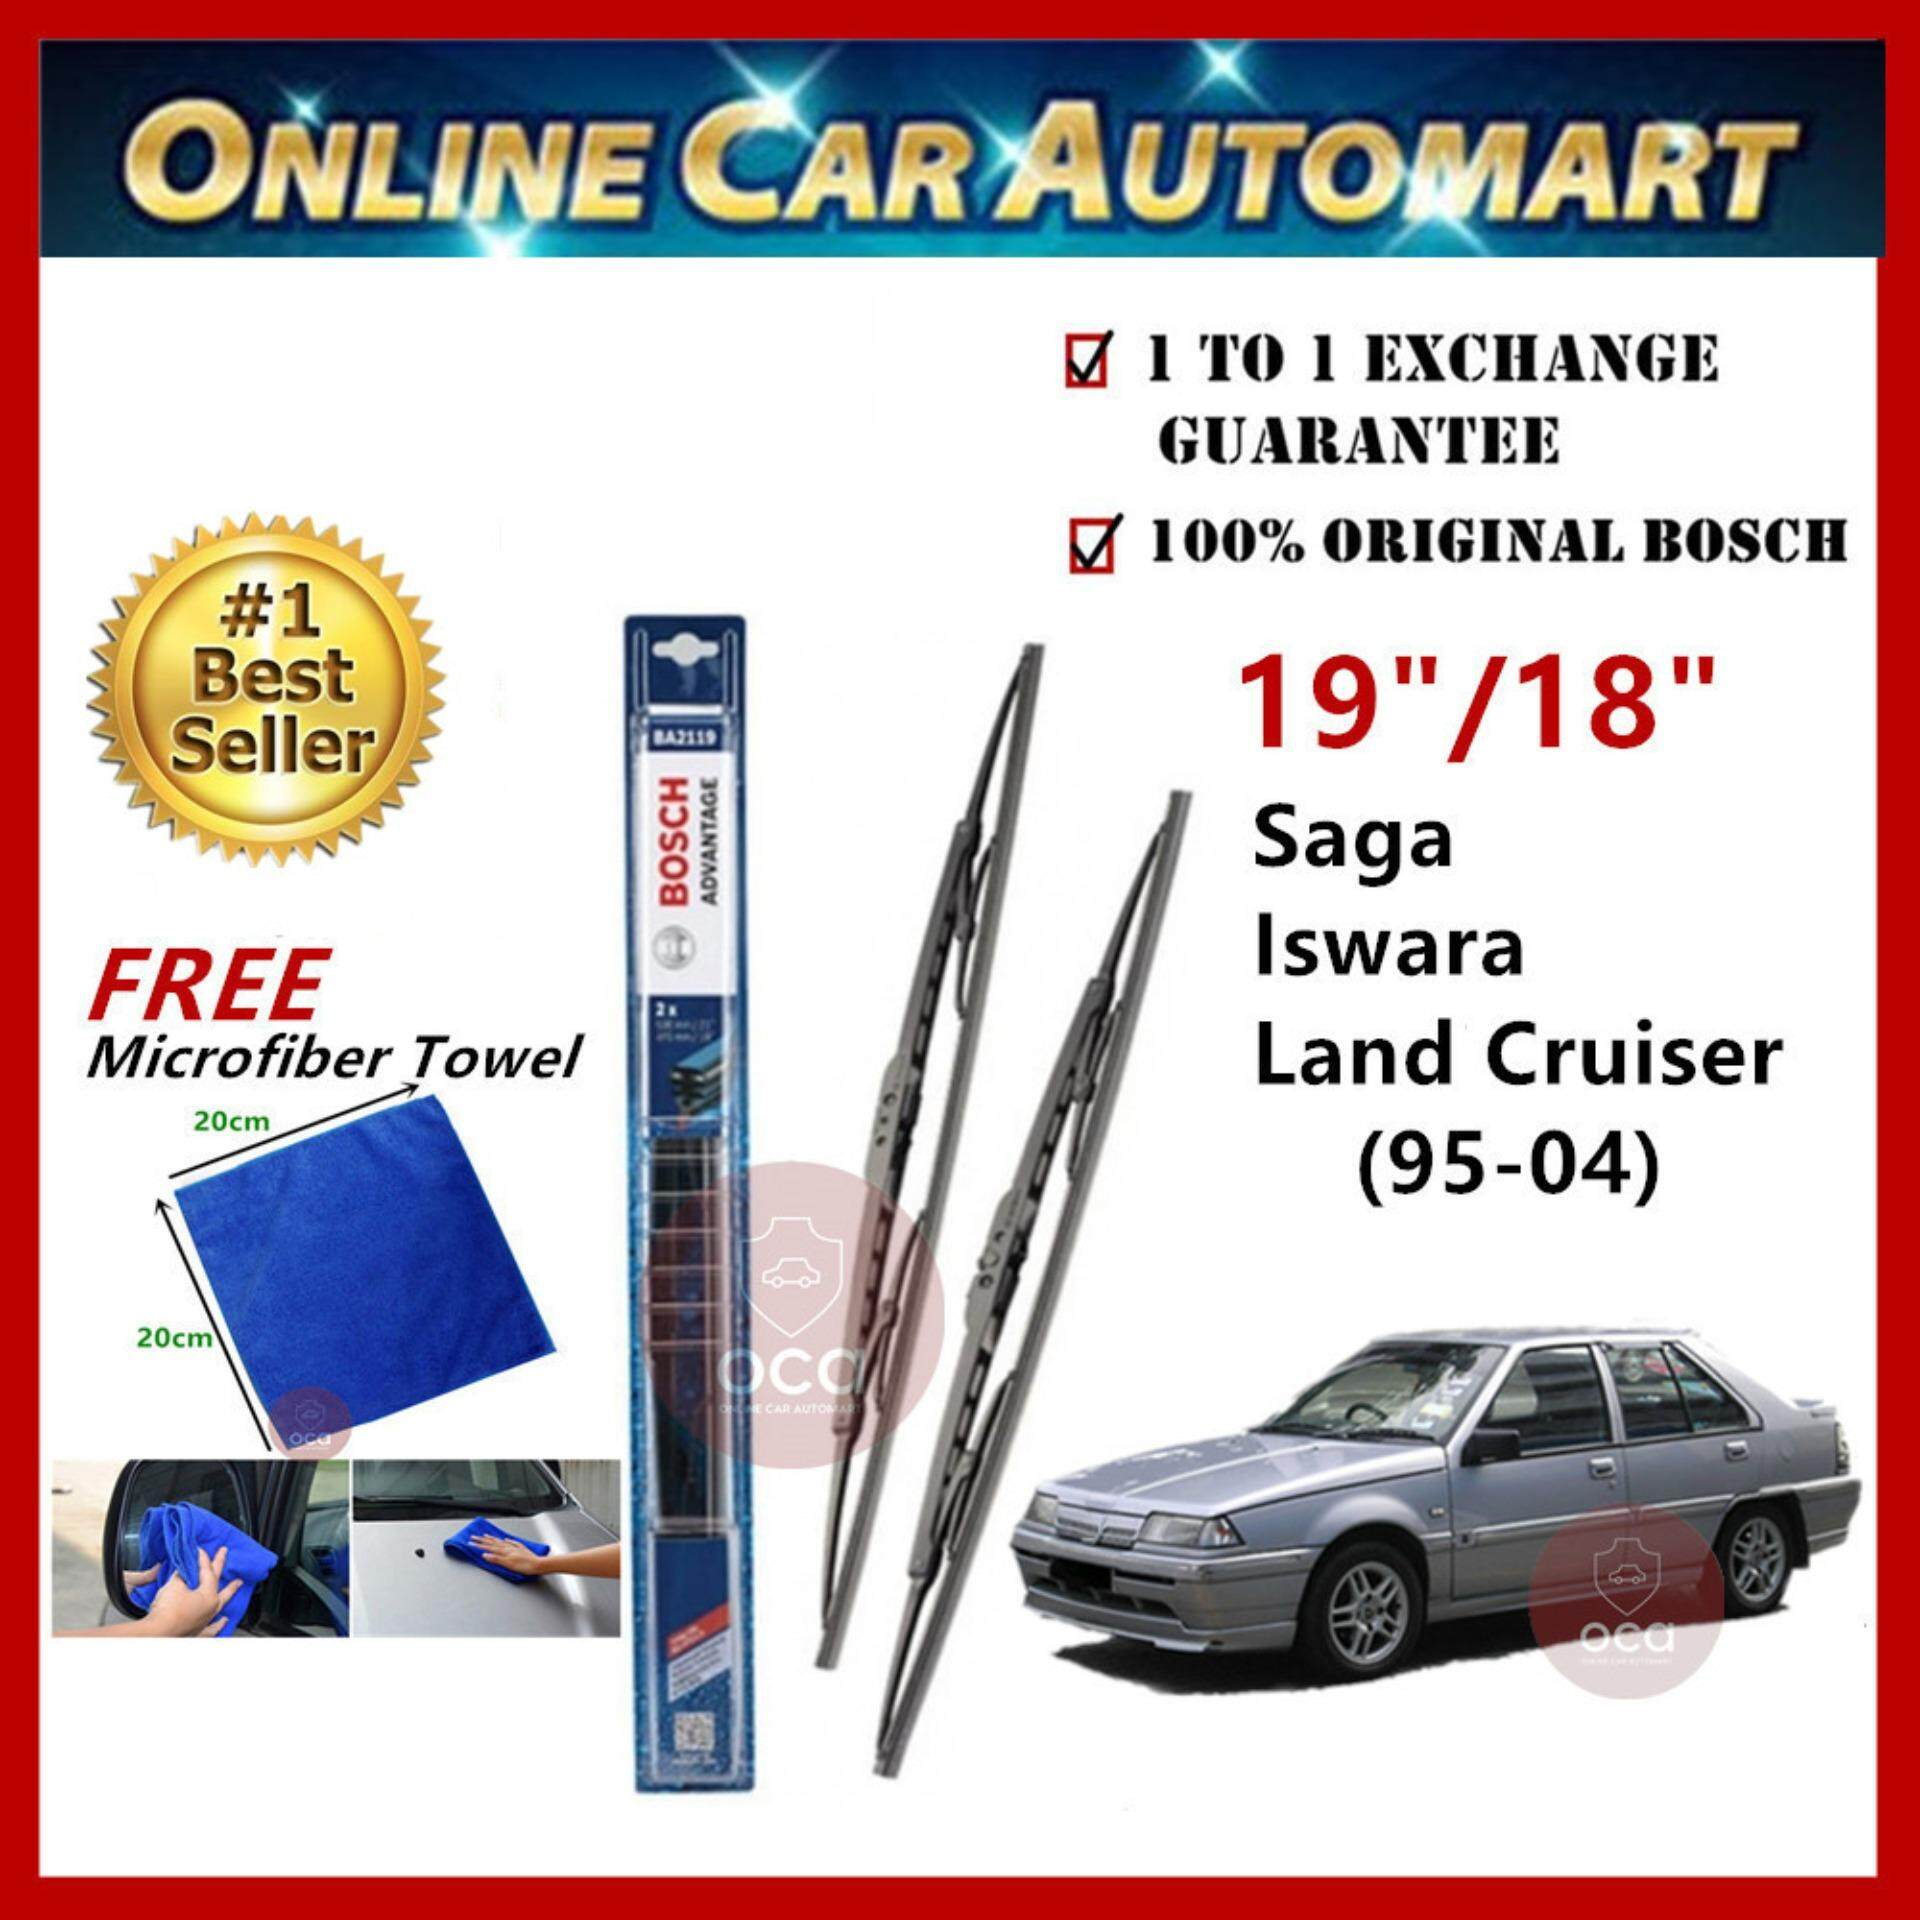 BOSCH ADVANTAGE BA1819 Wiper Blade 18''/19'' (Set) for Proton Saga Yr 1985-1992/Iswara/Land Cruiser 95-04